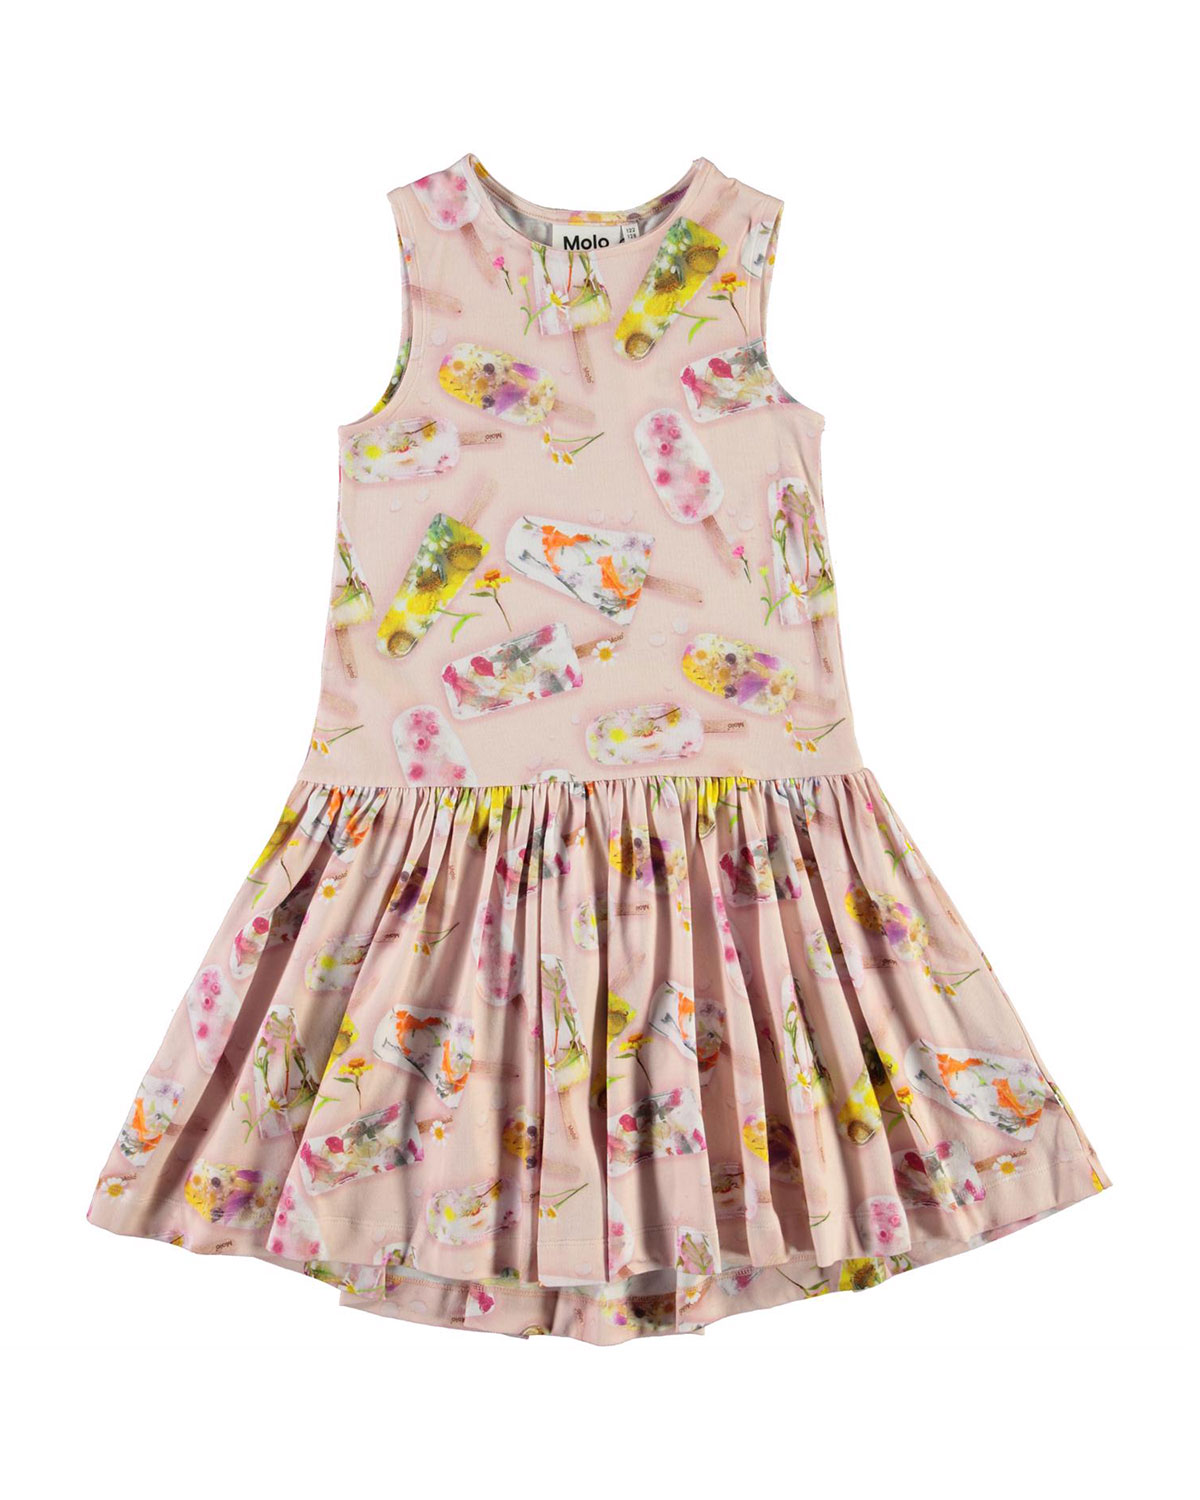 Molo GIRL'S CANDECE FLORAL POPSICLE SLEEVELESS DRESS